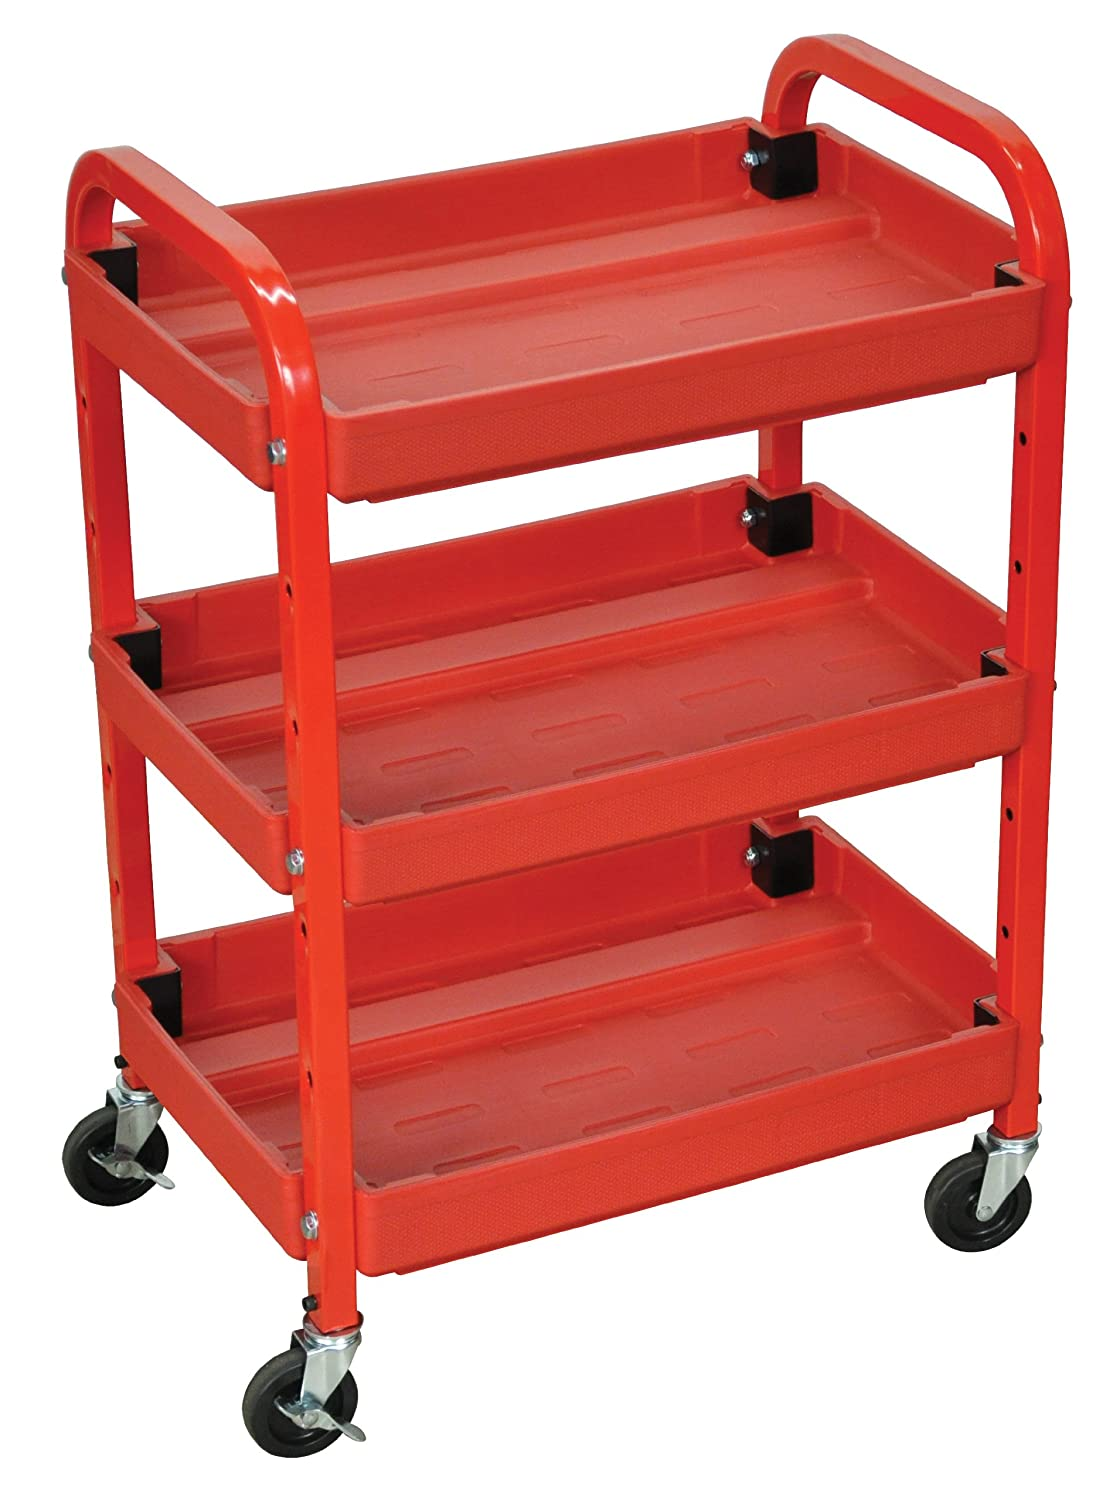 Amazon.com: Luxor atc332 Utility Cart ajustable, 2 estantes ...